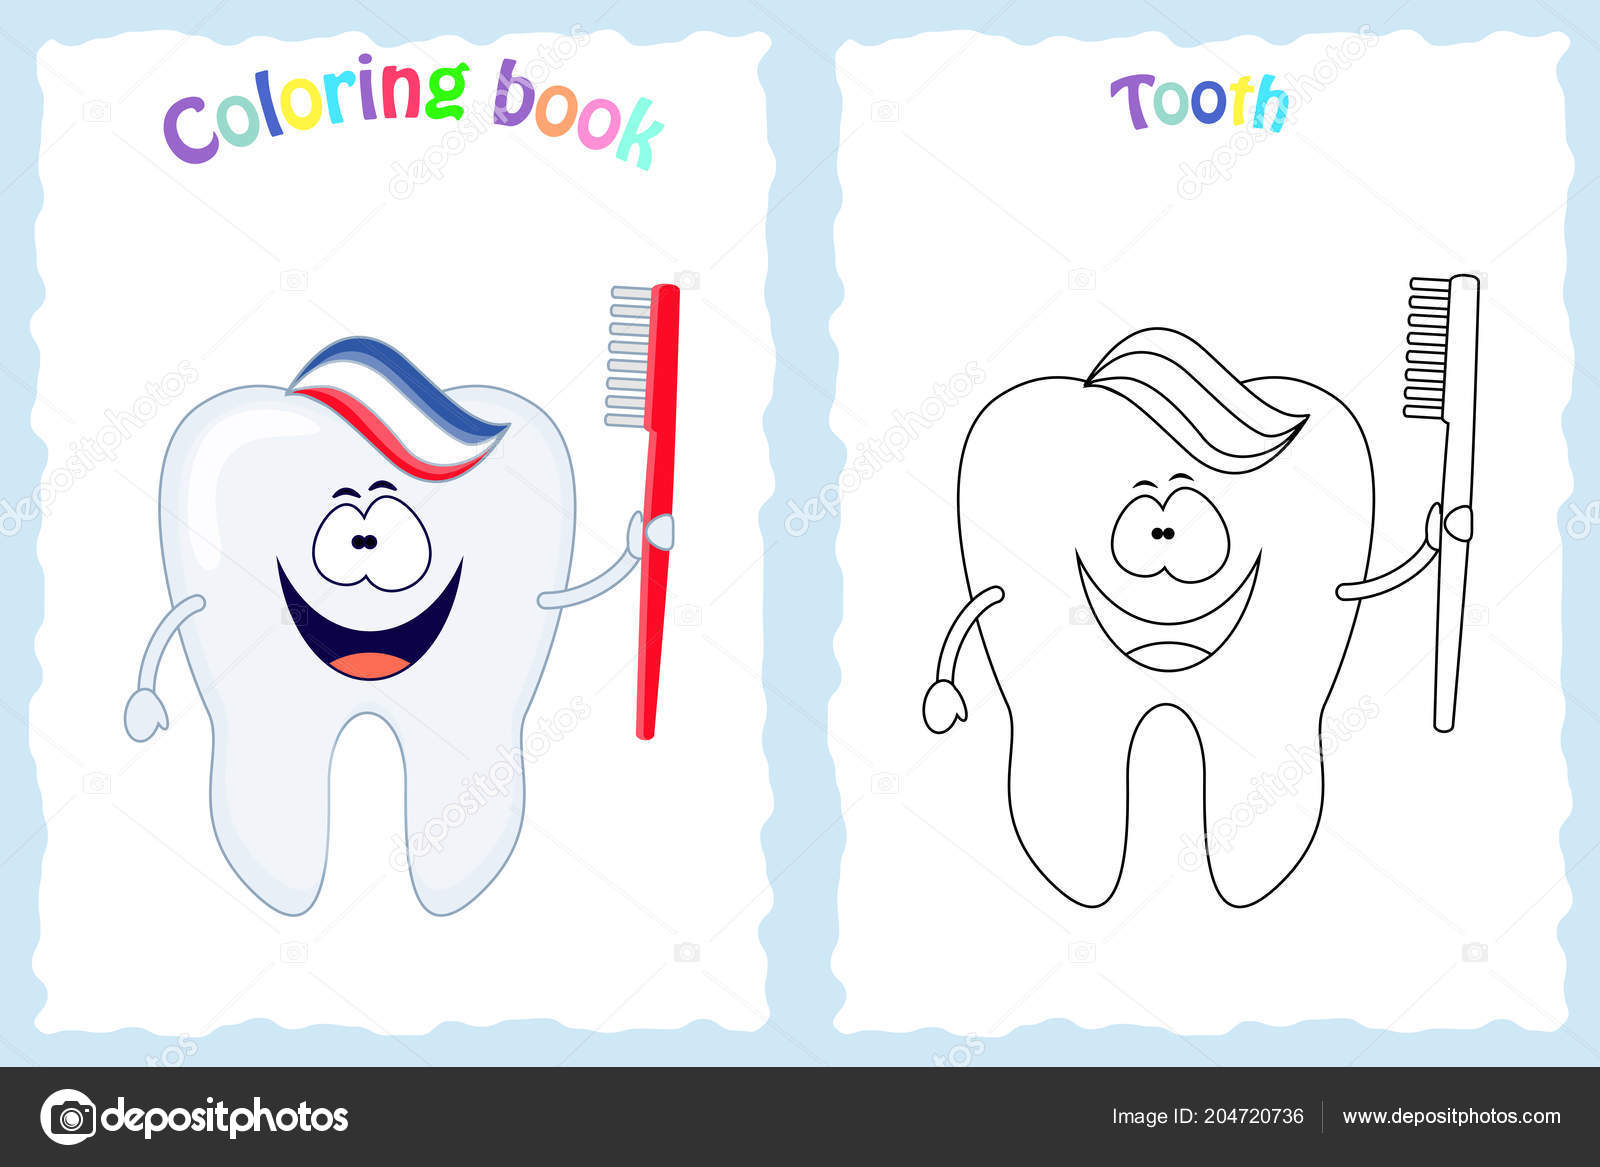 Coloring book page for children with colorful tooth with brush     Coloring book page for children with colorful tooth with brush and  toothpaste and sketch to color  Preschool education  Vector illustration   Kids activity